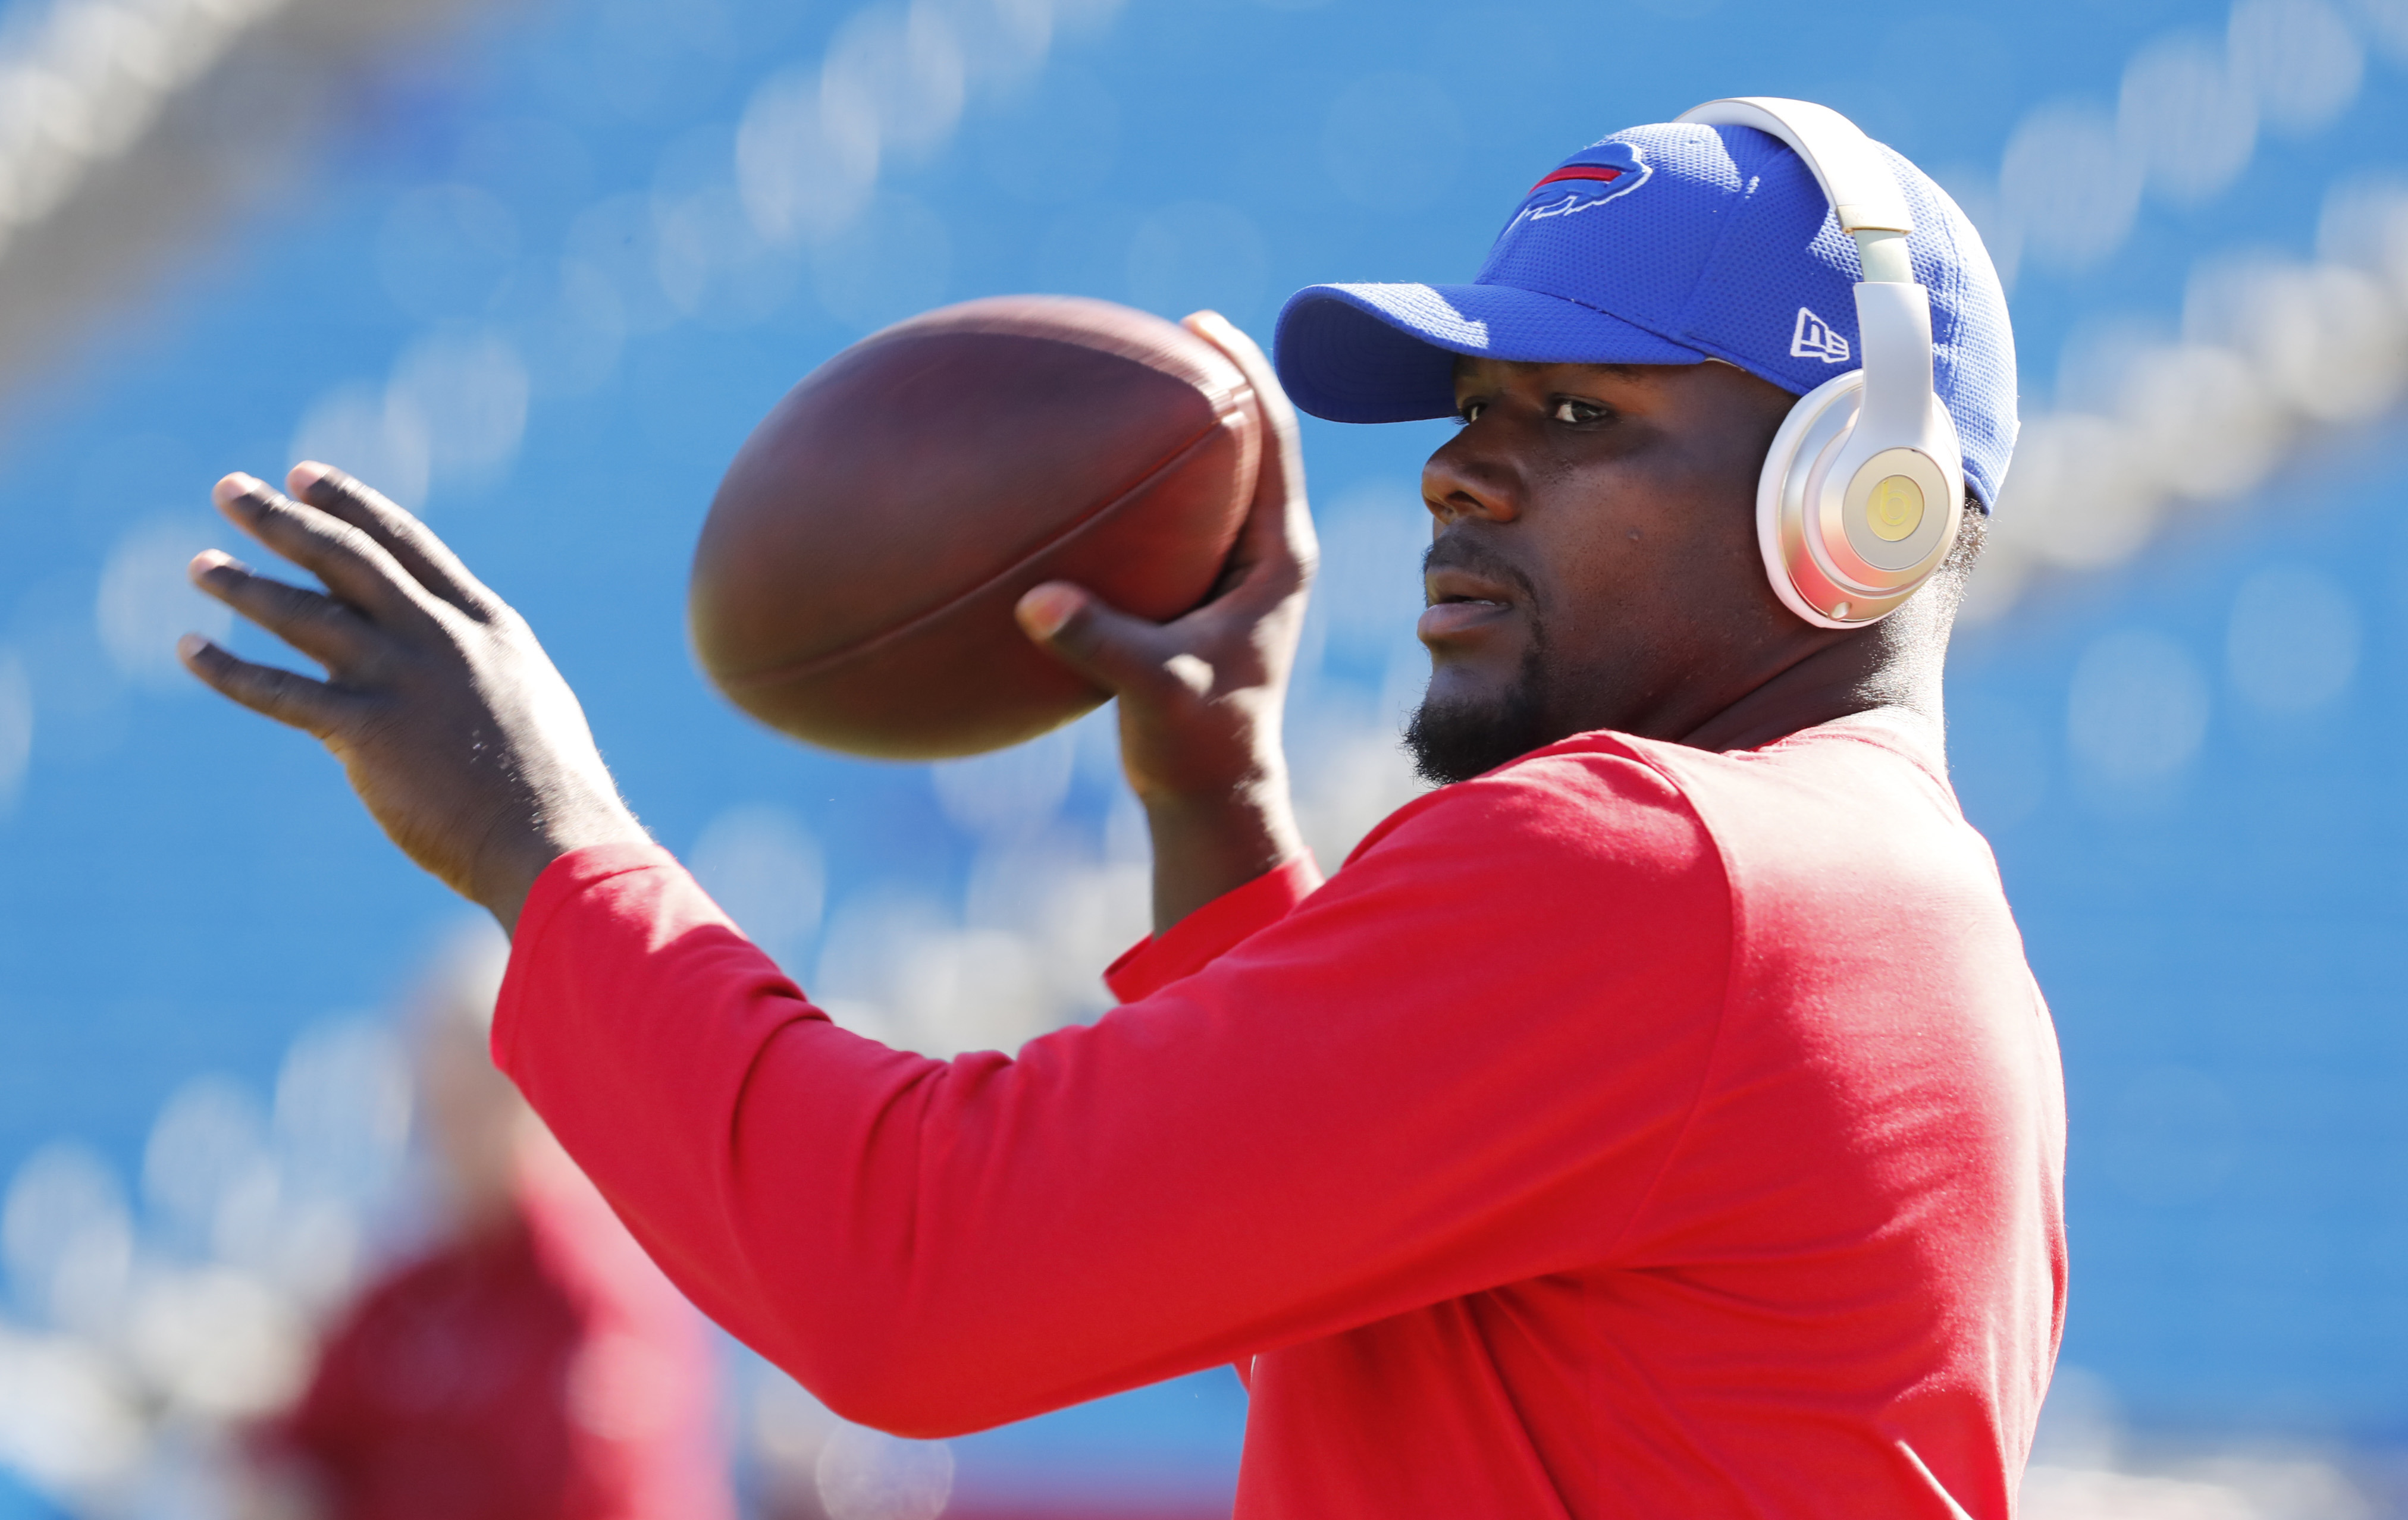 Former Bills quarterback Cardale Jones now gets to show his potential with the Chargers. (Harry Scull Jr./Buffalo News)